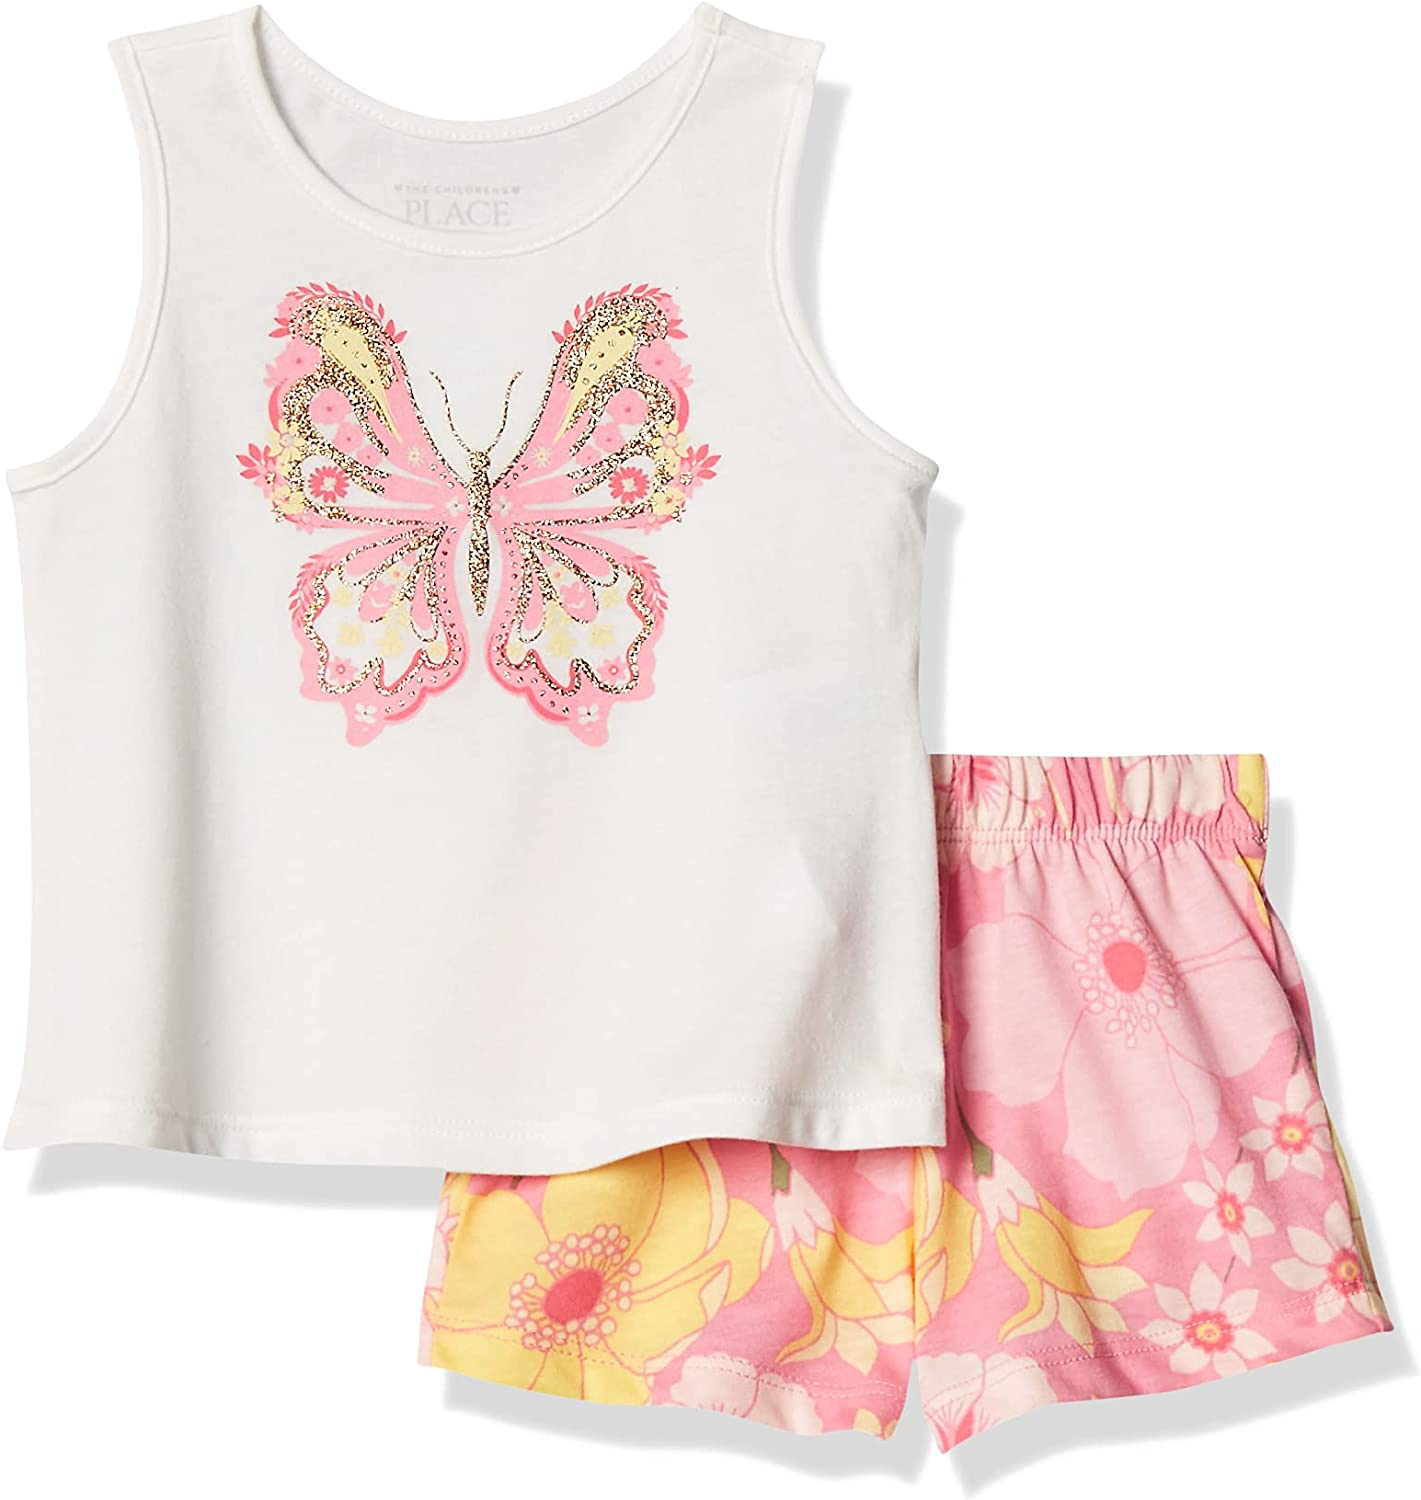 The 1 year warranty Children's Place baby-girls Short Louisville-Jefferson County Mall Casual Sets